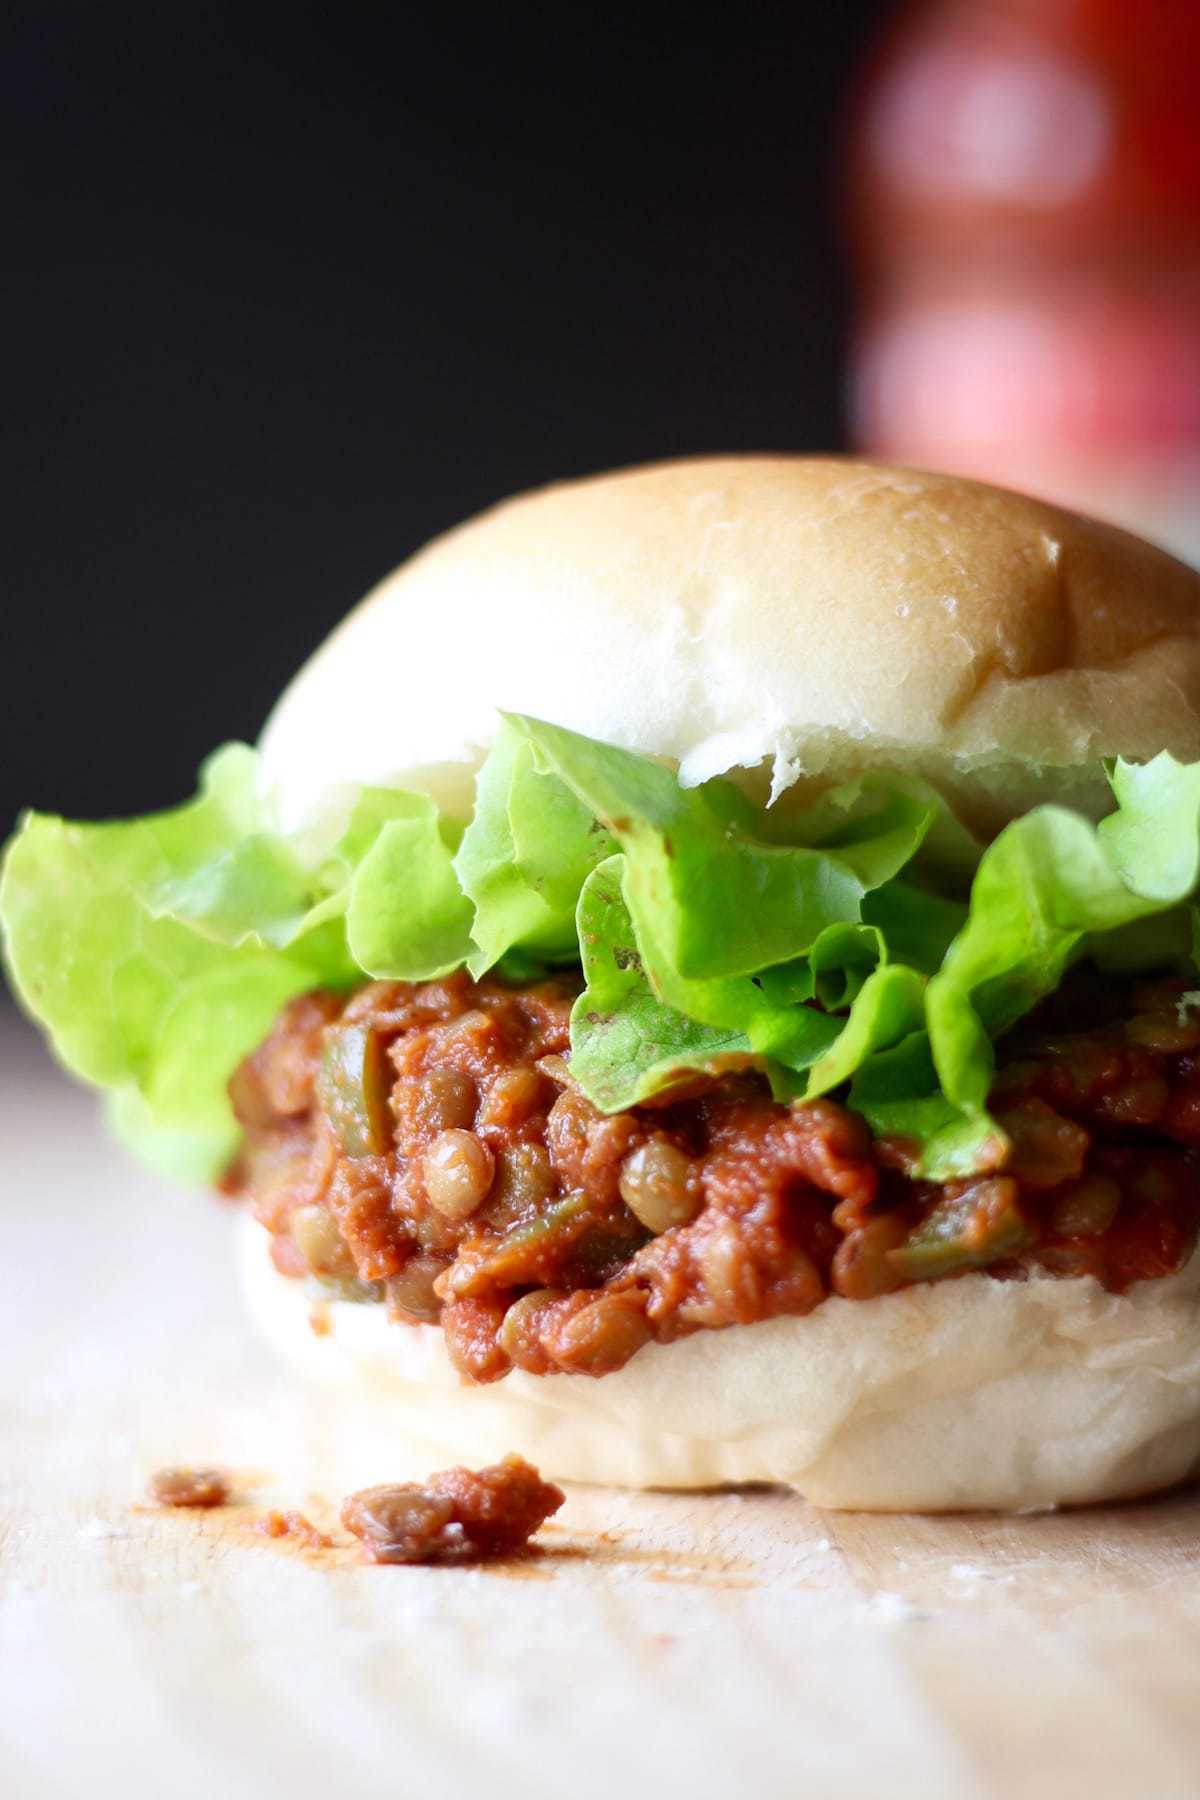 lentil sloppy joes spilling out of a soft hamburger bun